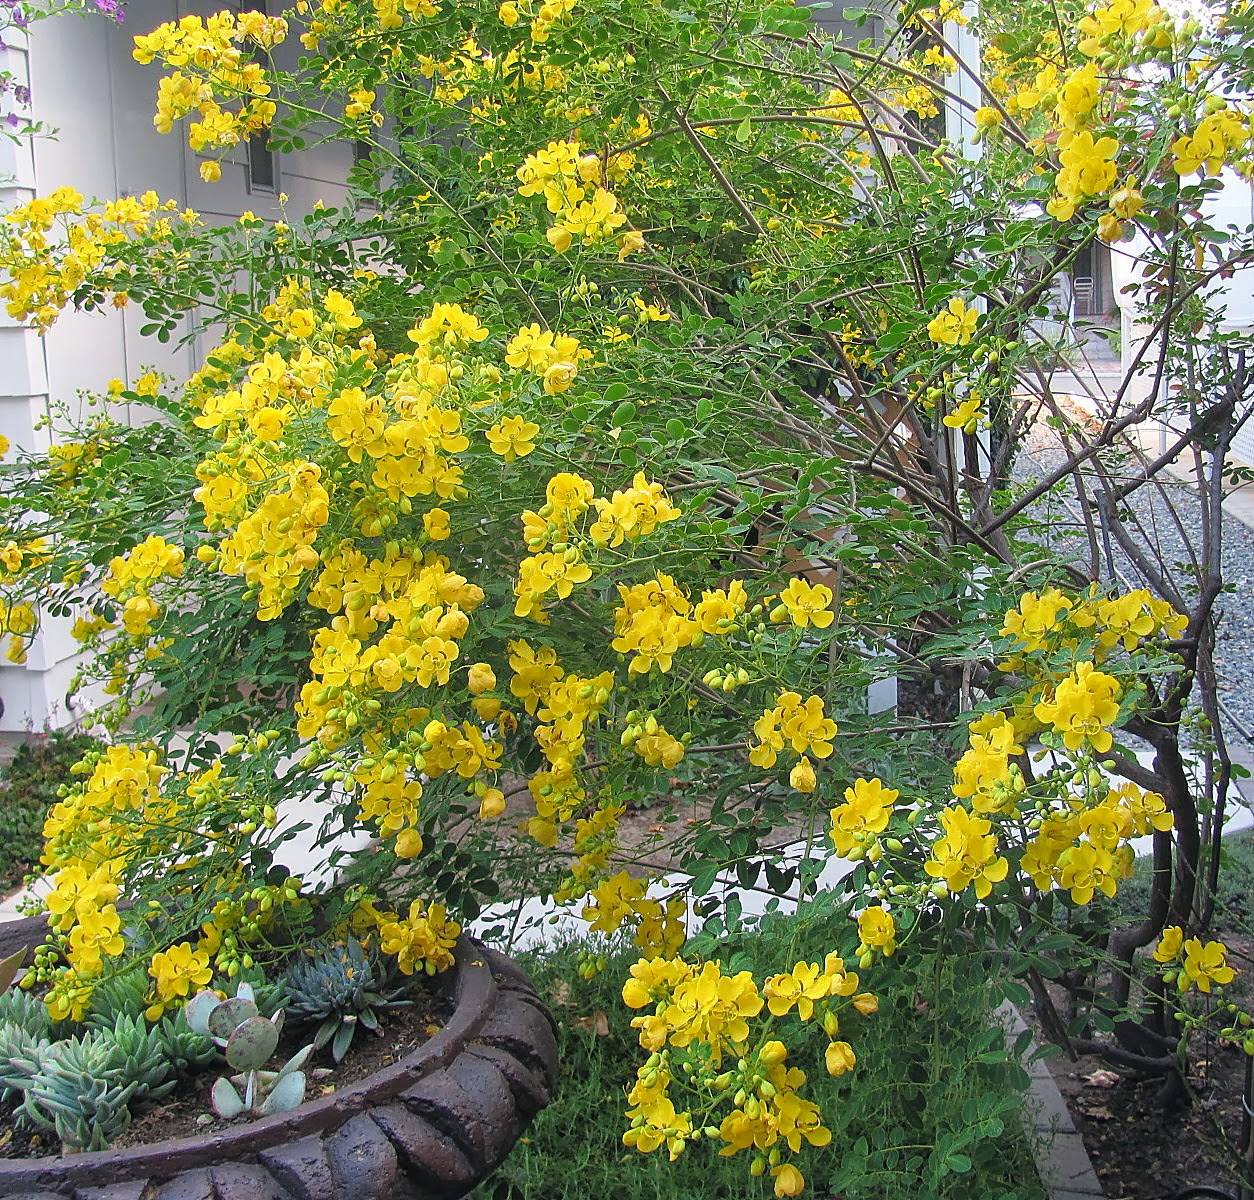 Flamblogger october 2013 the name of the yellow flowering shrubtree that i showed on my last blog it is the cassia fistula or golden rain tree or a variety thereof mightylinksfo